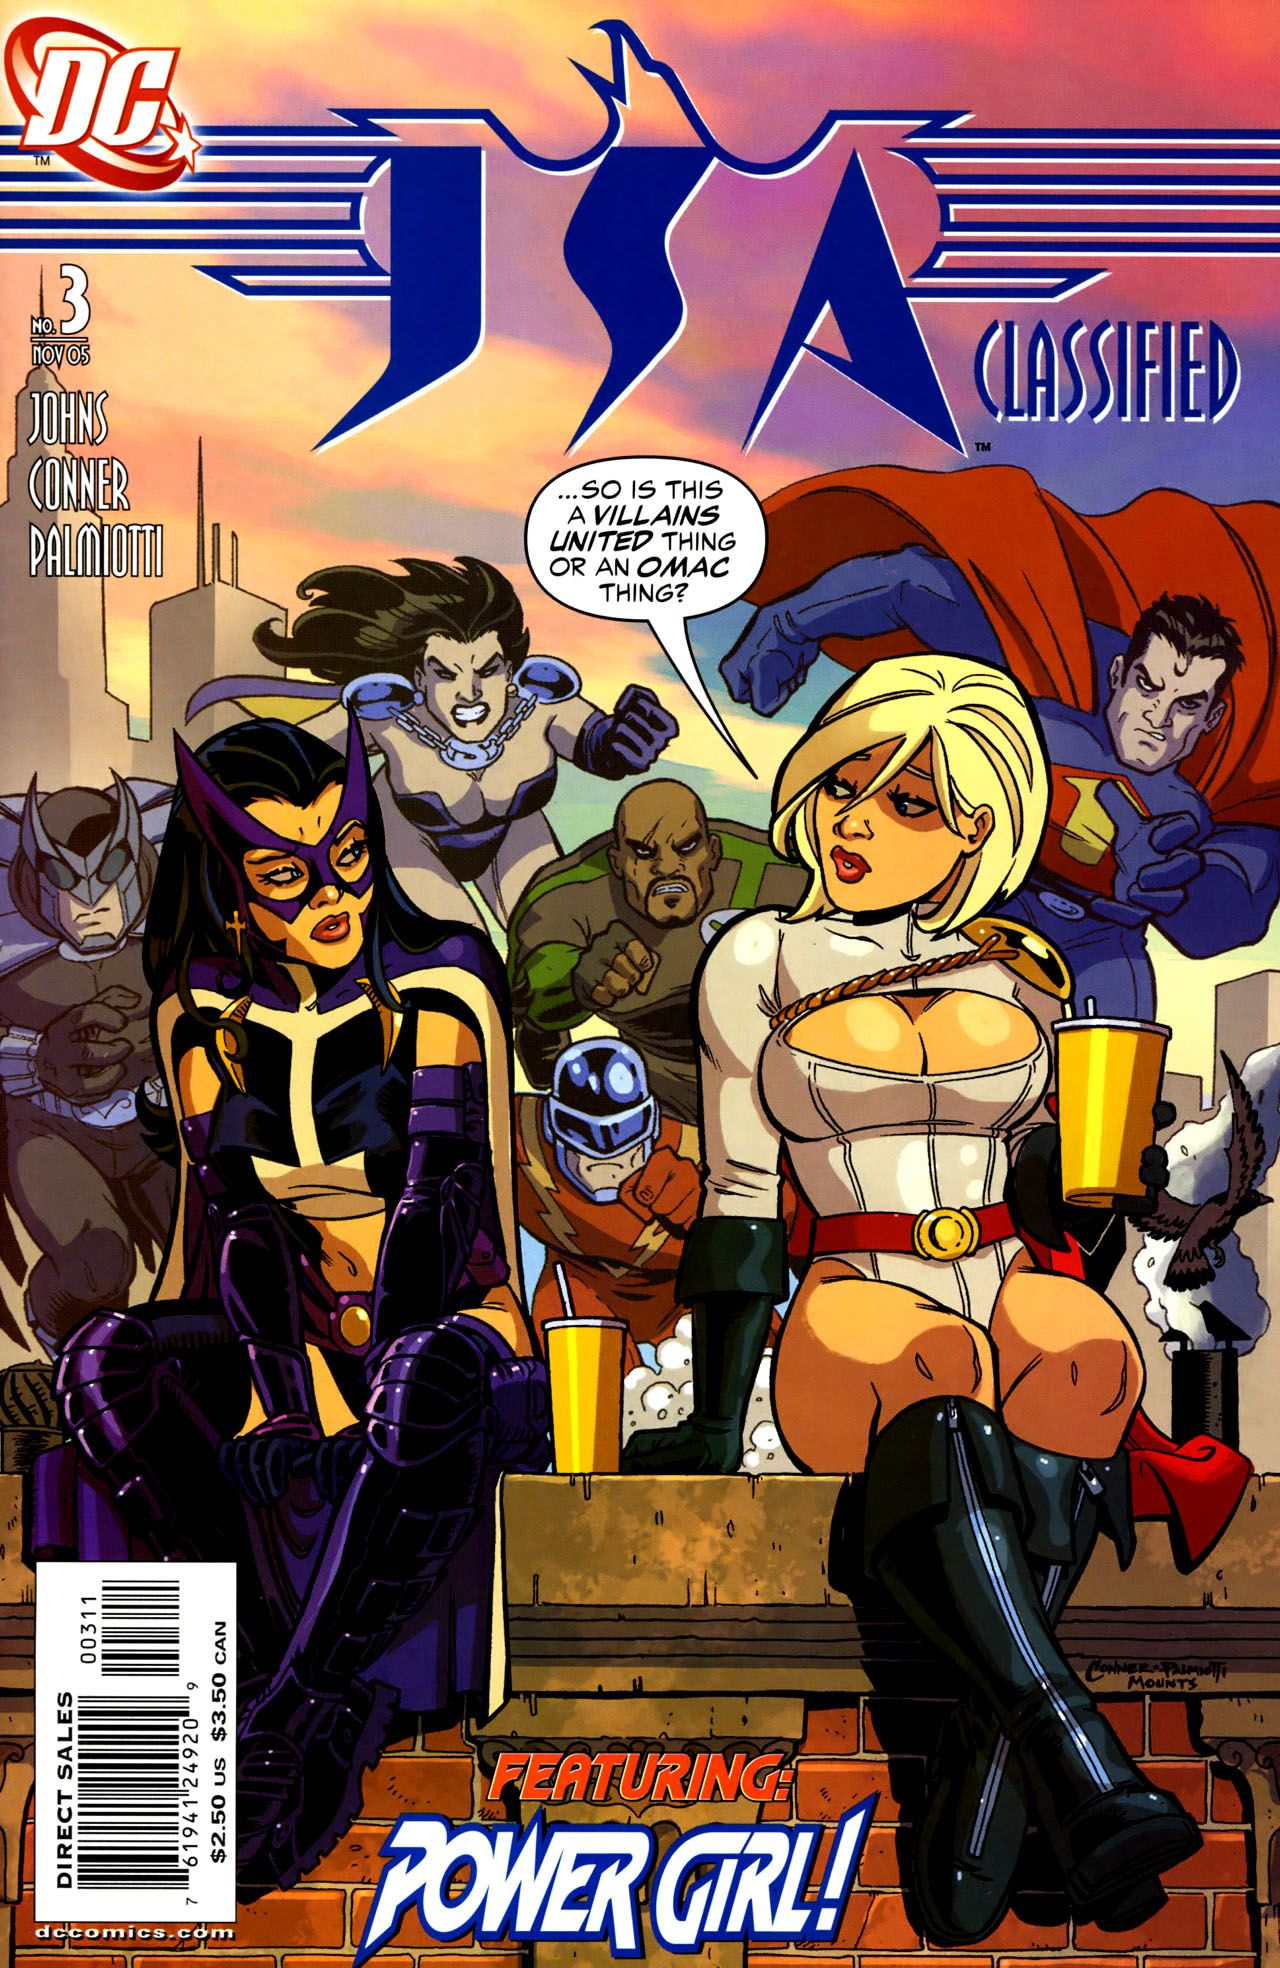 Huntress/Power Girl